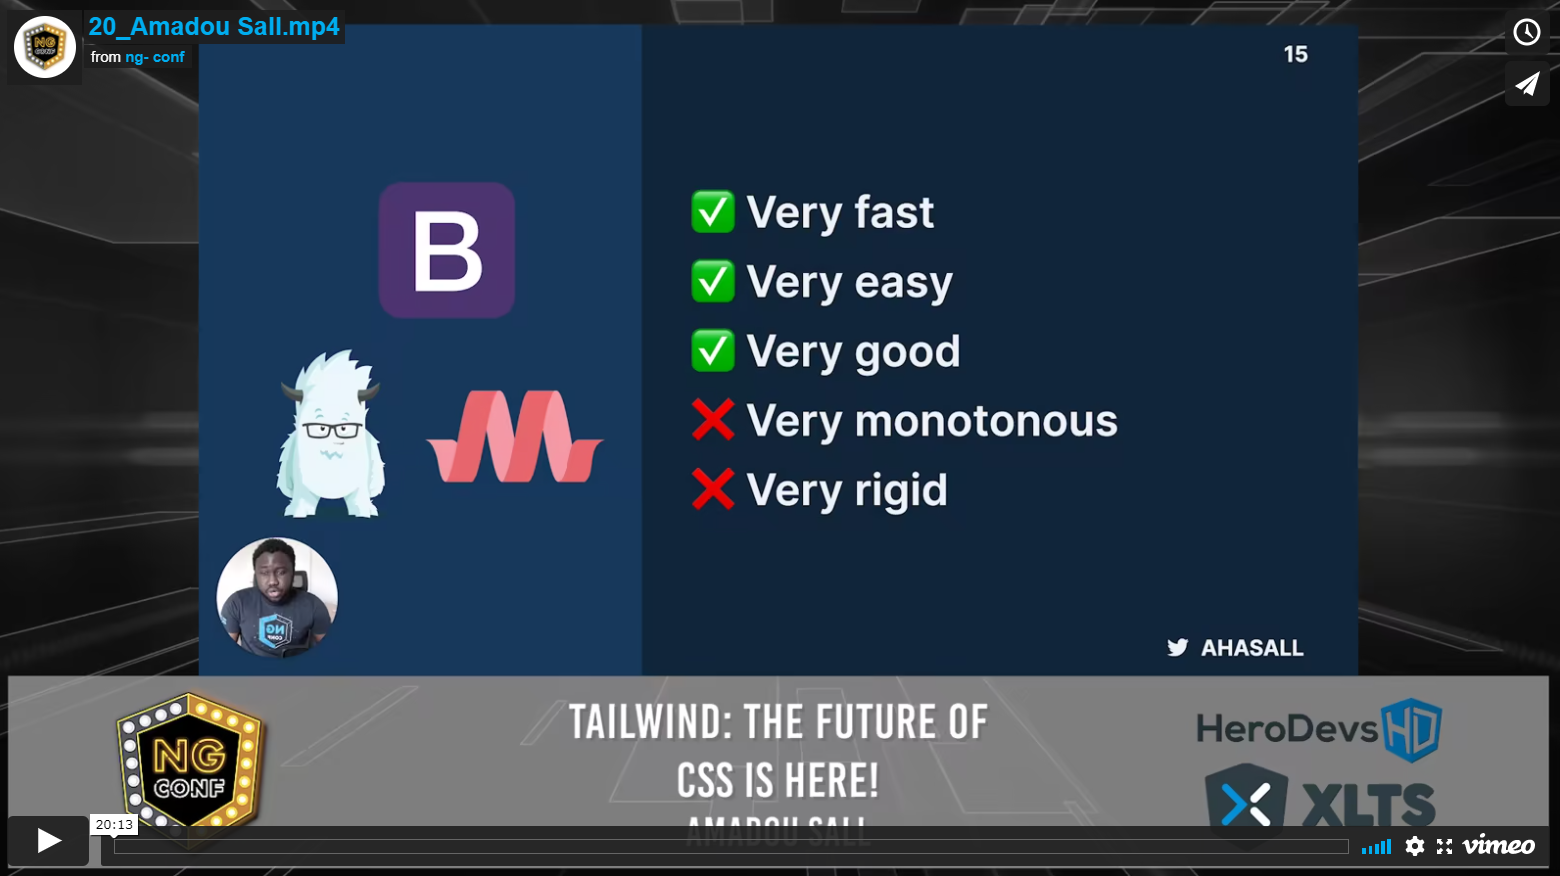 Tailwind: The Future of CSS is Here!